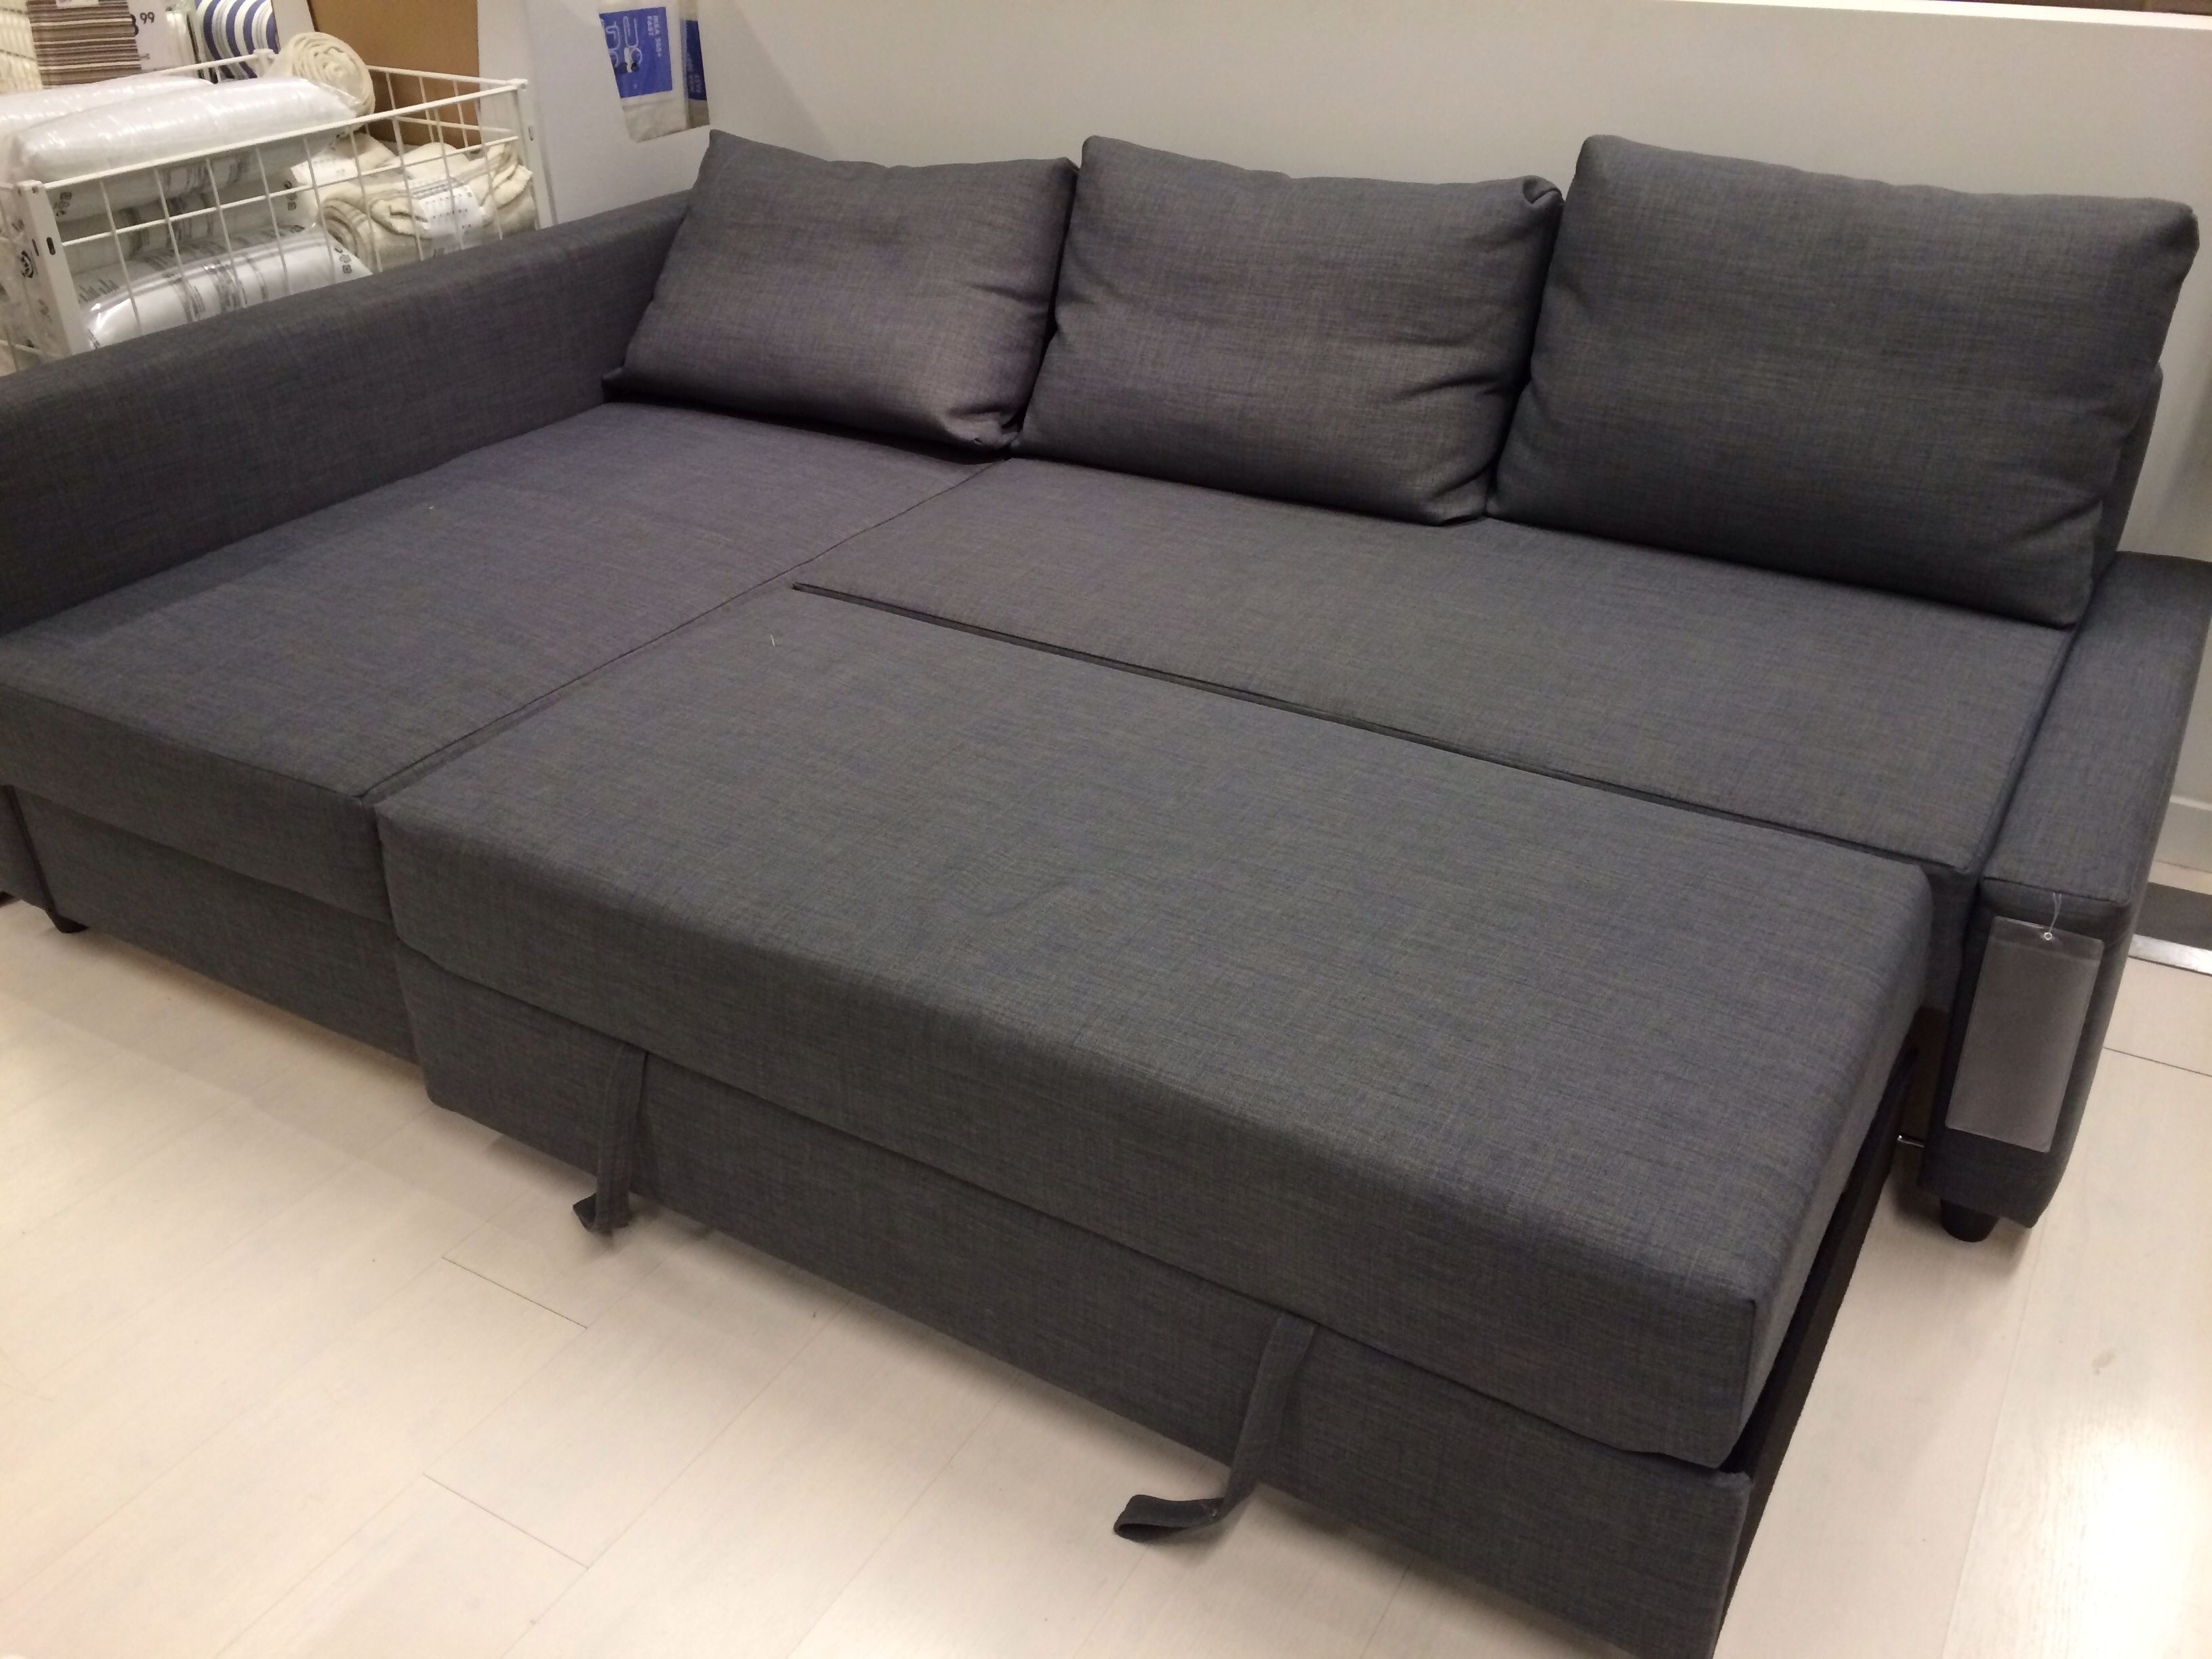 new product a0a43 11e38 FRIHETEN Corner sofa-bed (Skiftebo dark grey) - IKEA | For ...